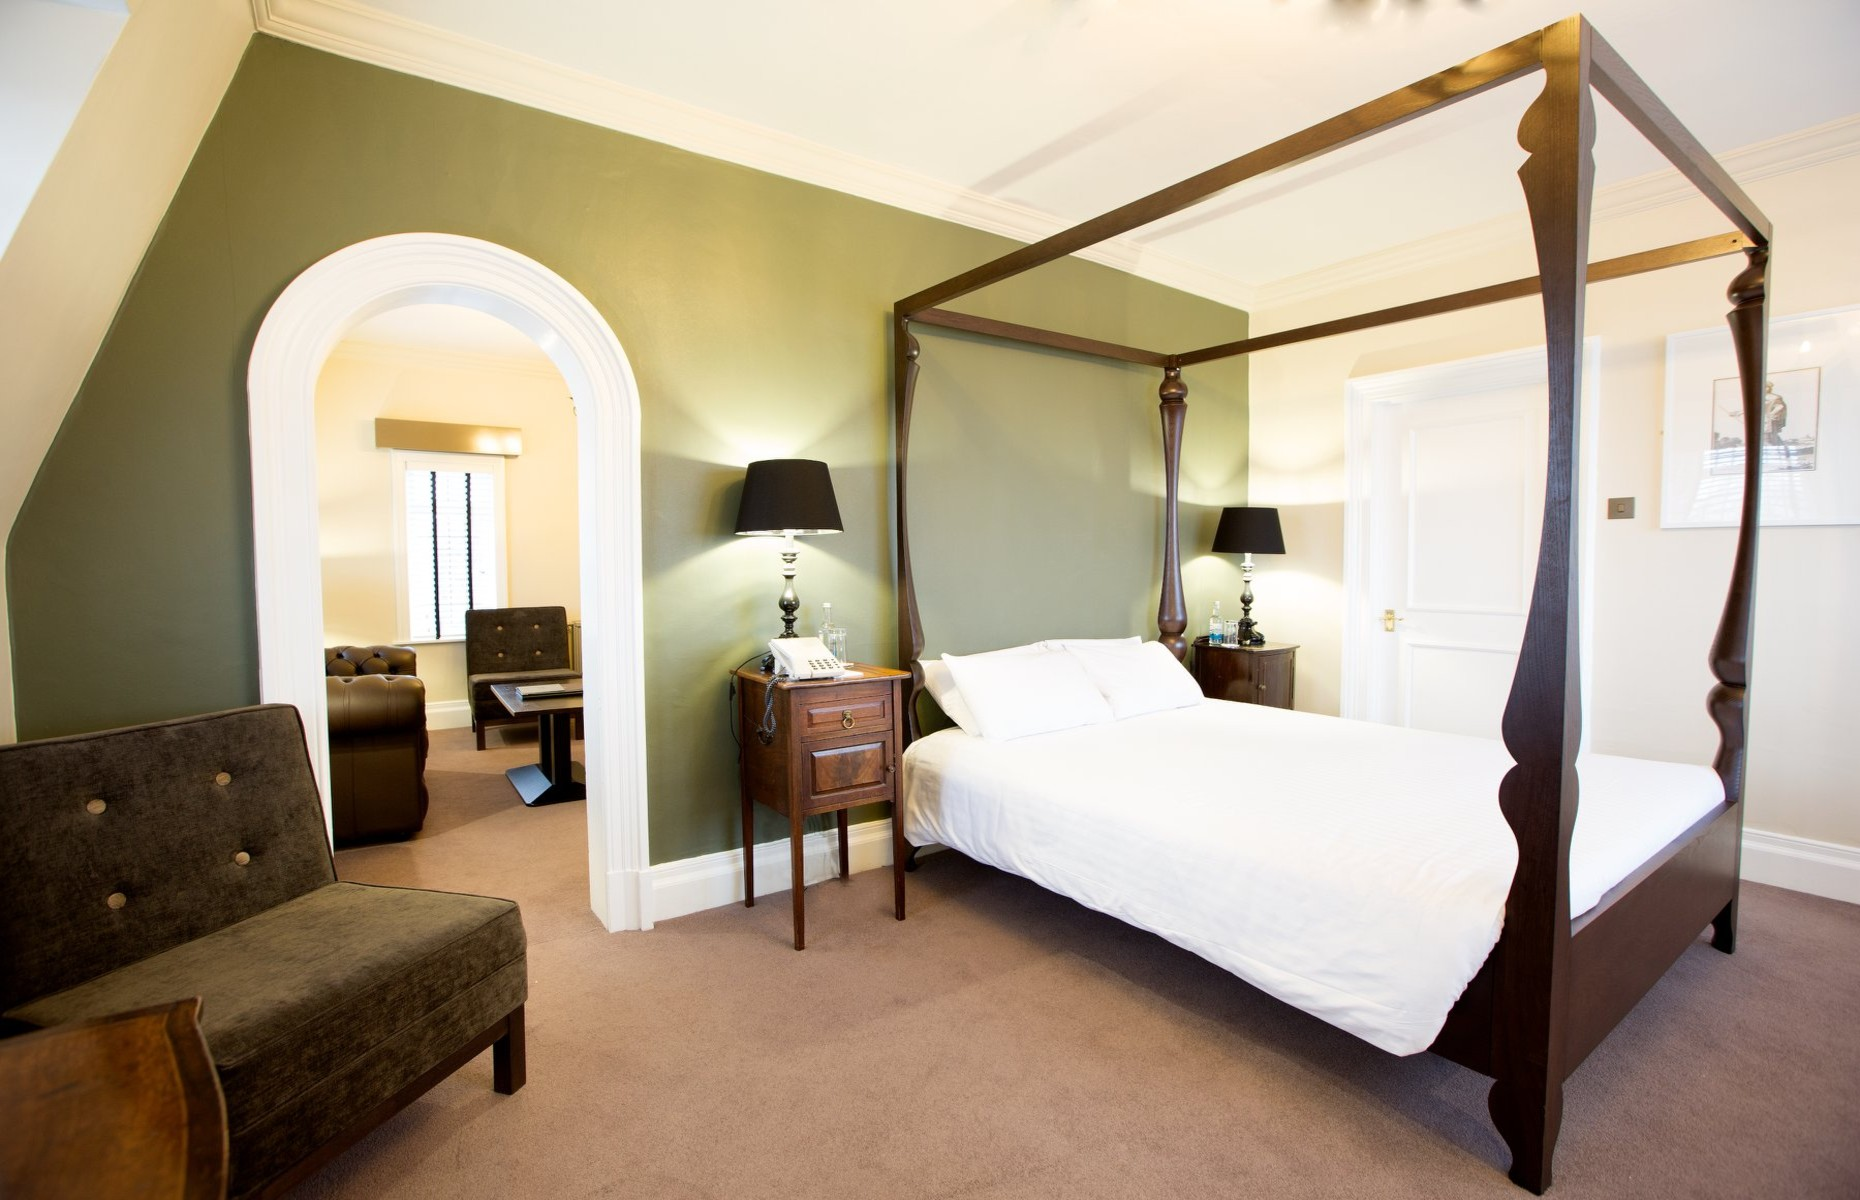 The White Hart Hotel bedroom interior (Image: White Hart Hotel/Facebook)